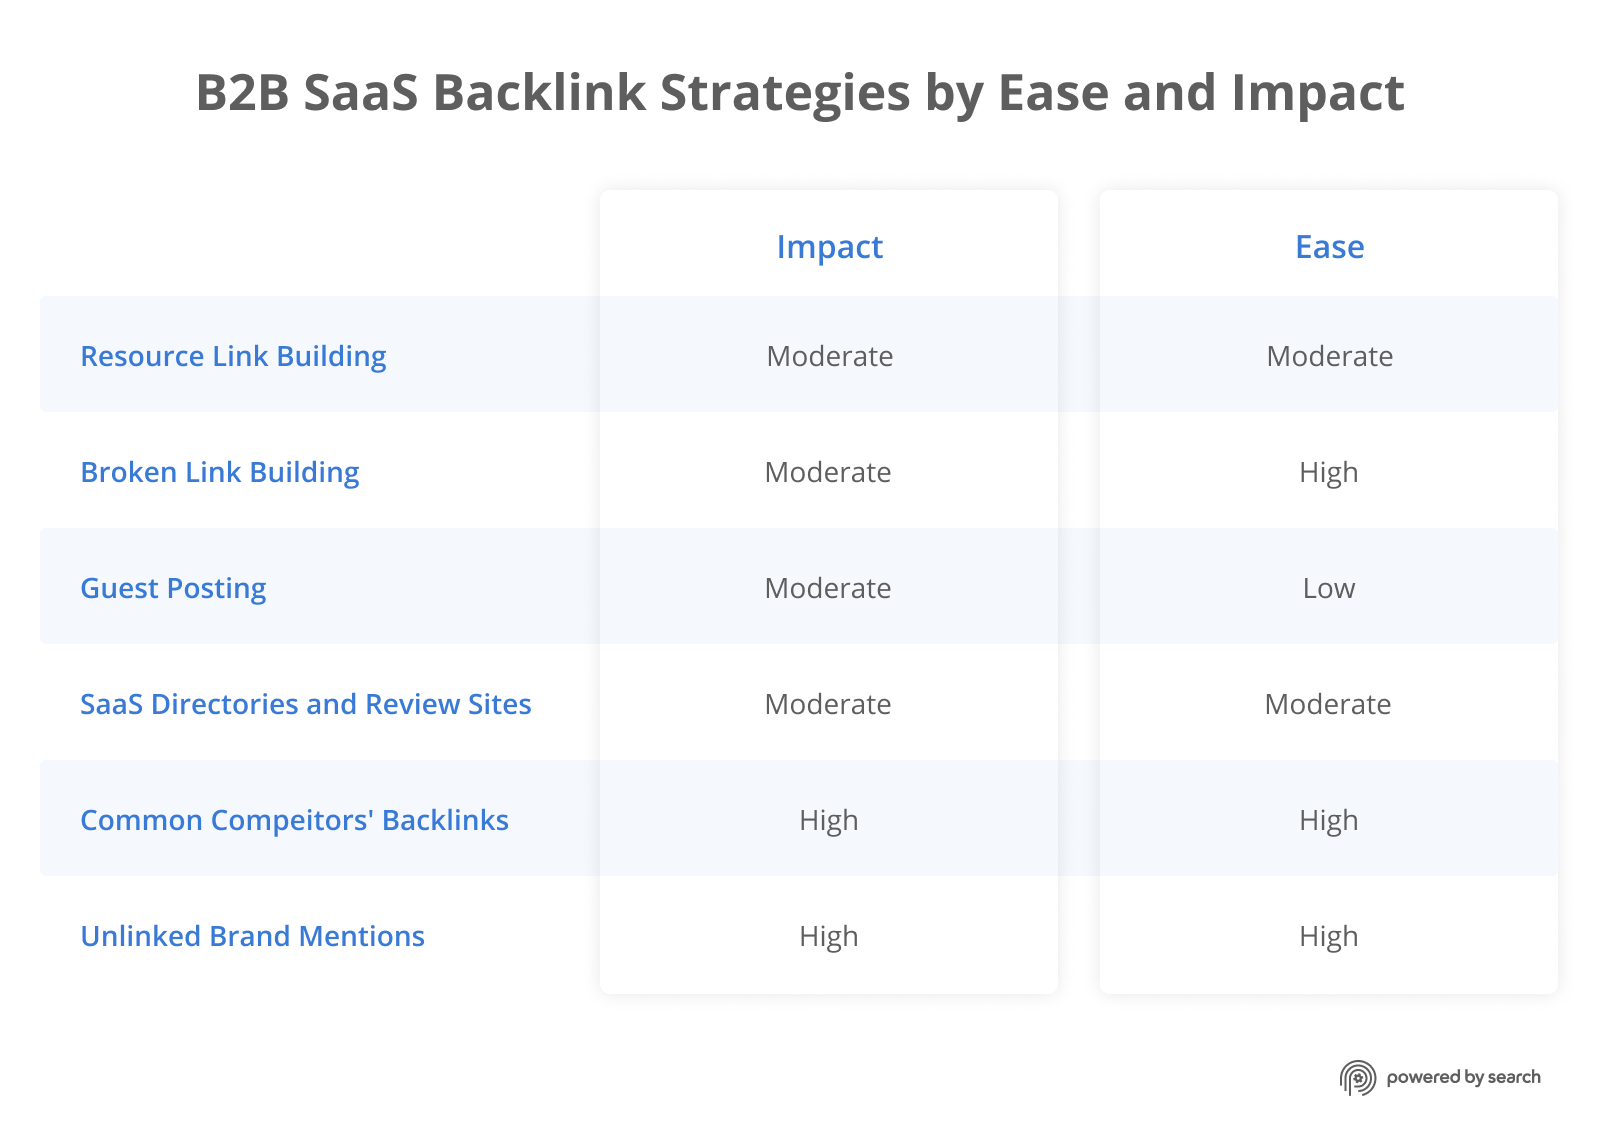 B2B SaaS Backlink Strategies by Ease and Impact